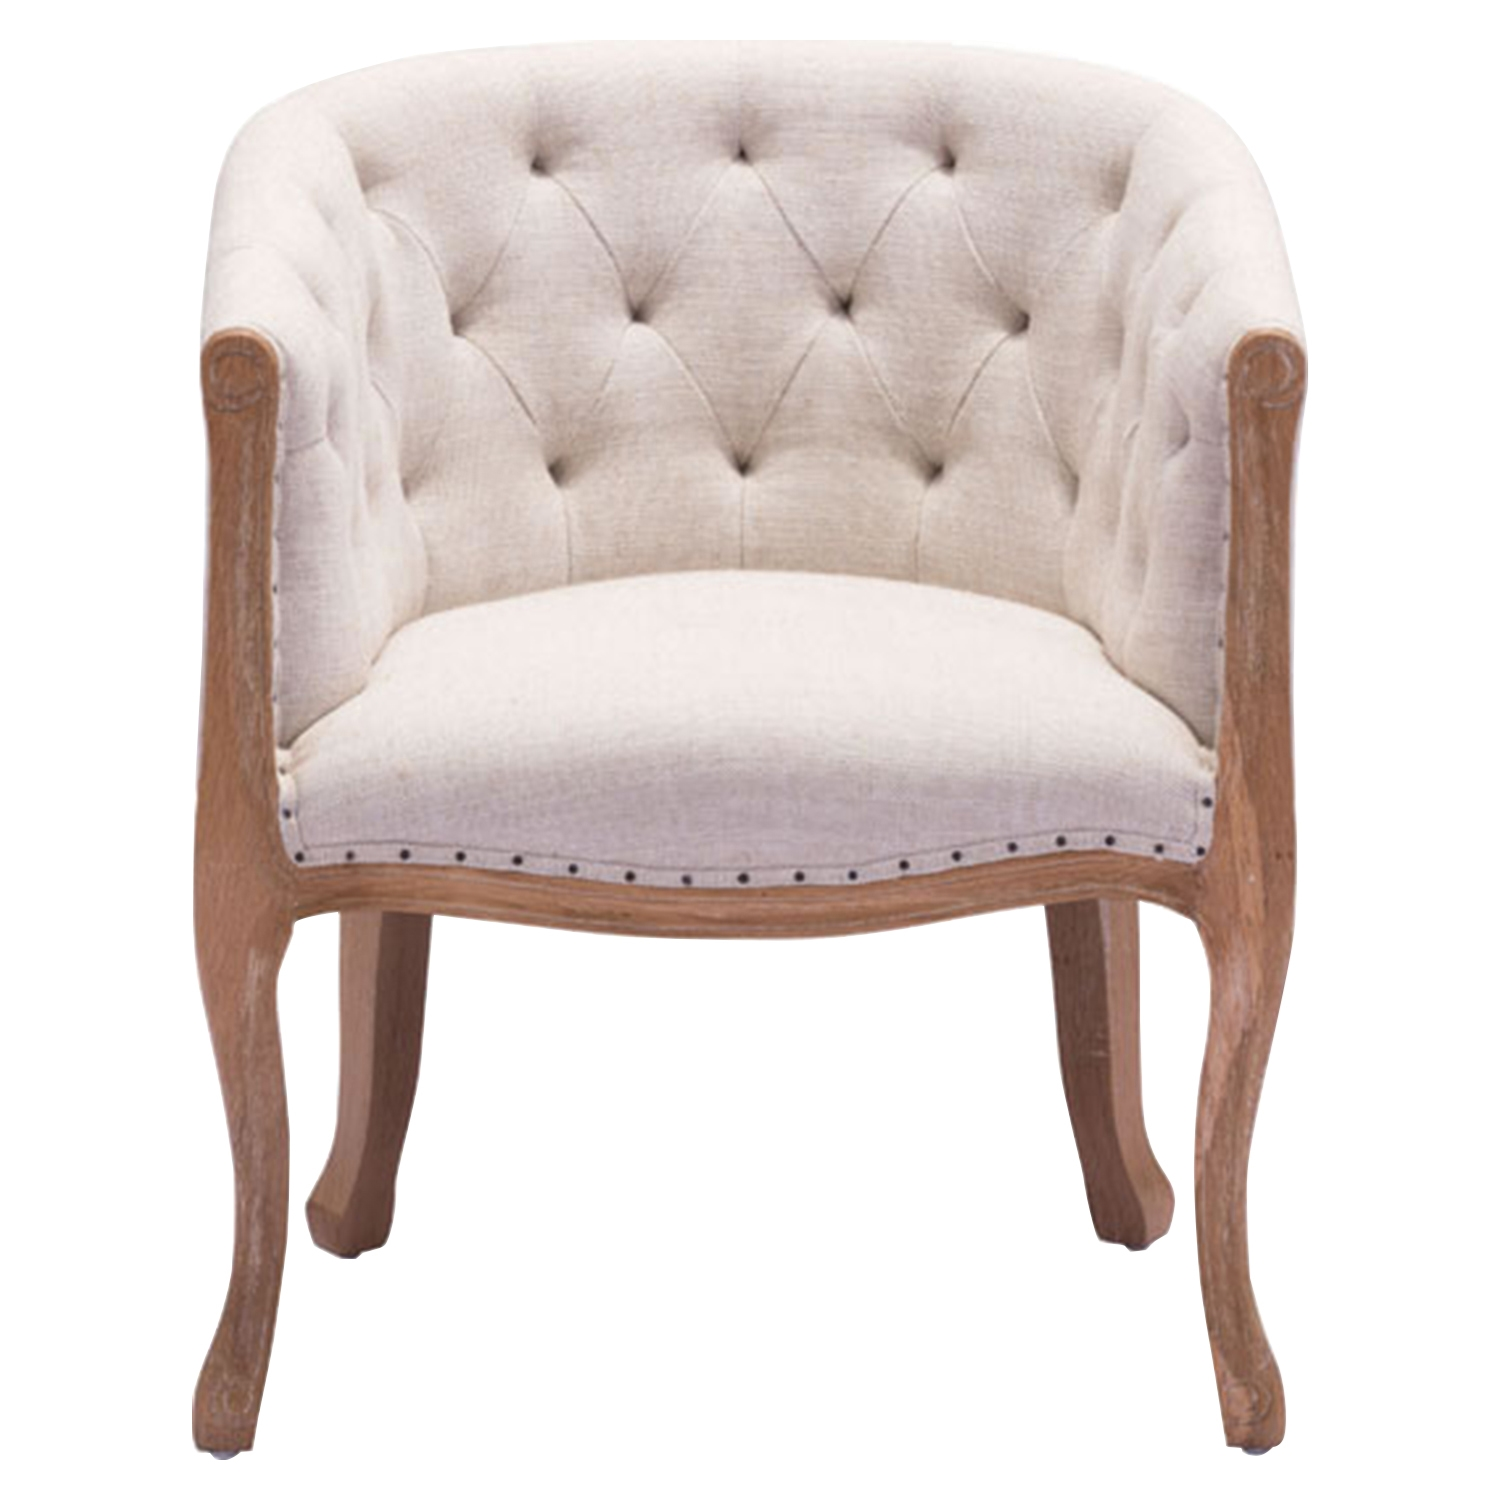 Shotwell Dining Chair - Tufted, Beige - ZM-98380